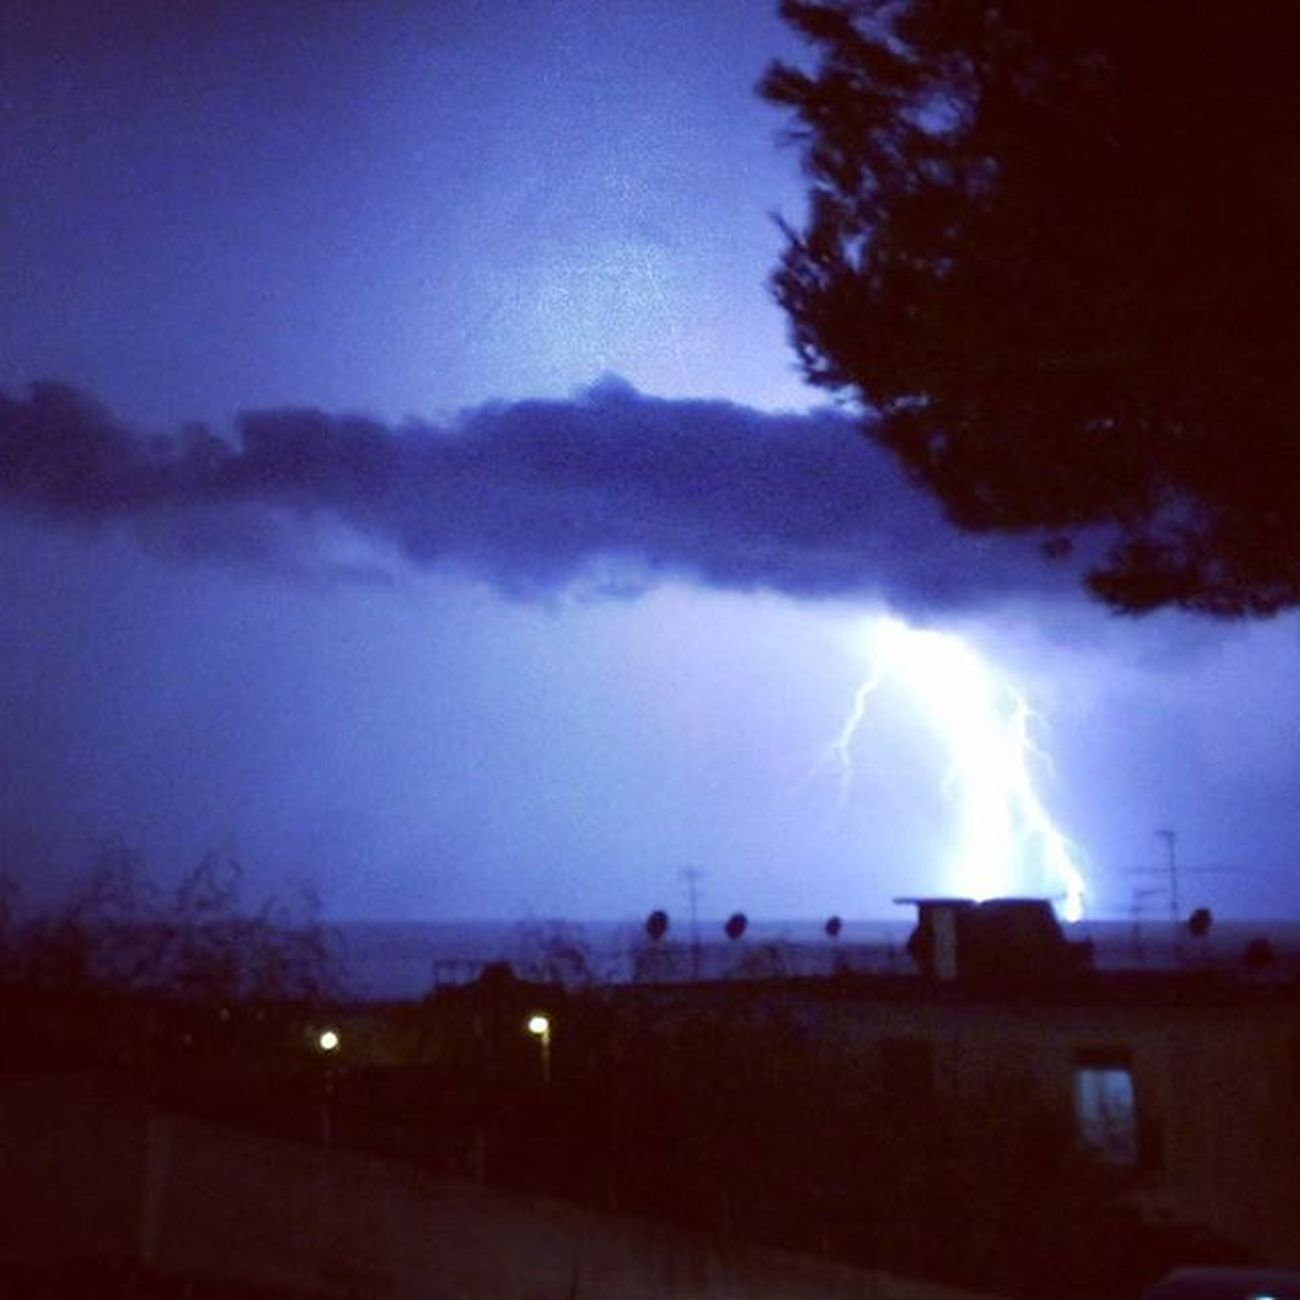 Lightning Storm Instagood Istanday Instango Tagphoto Tag4like Tag Follow Picoftheday Likeforlike